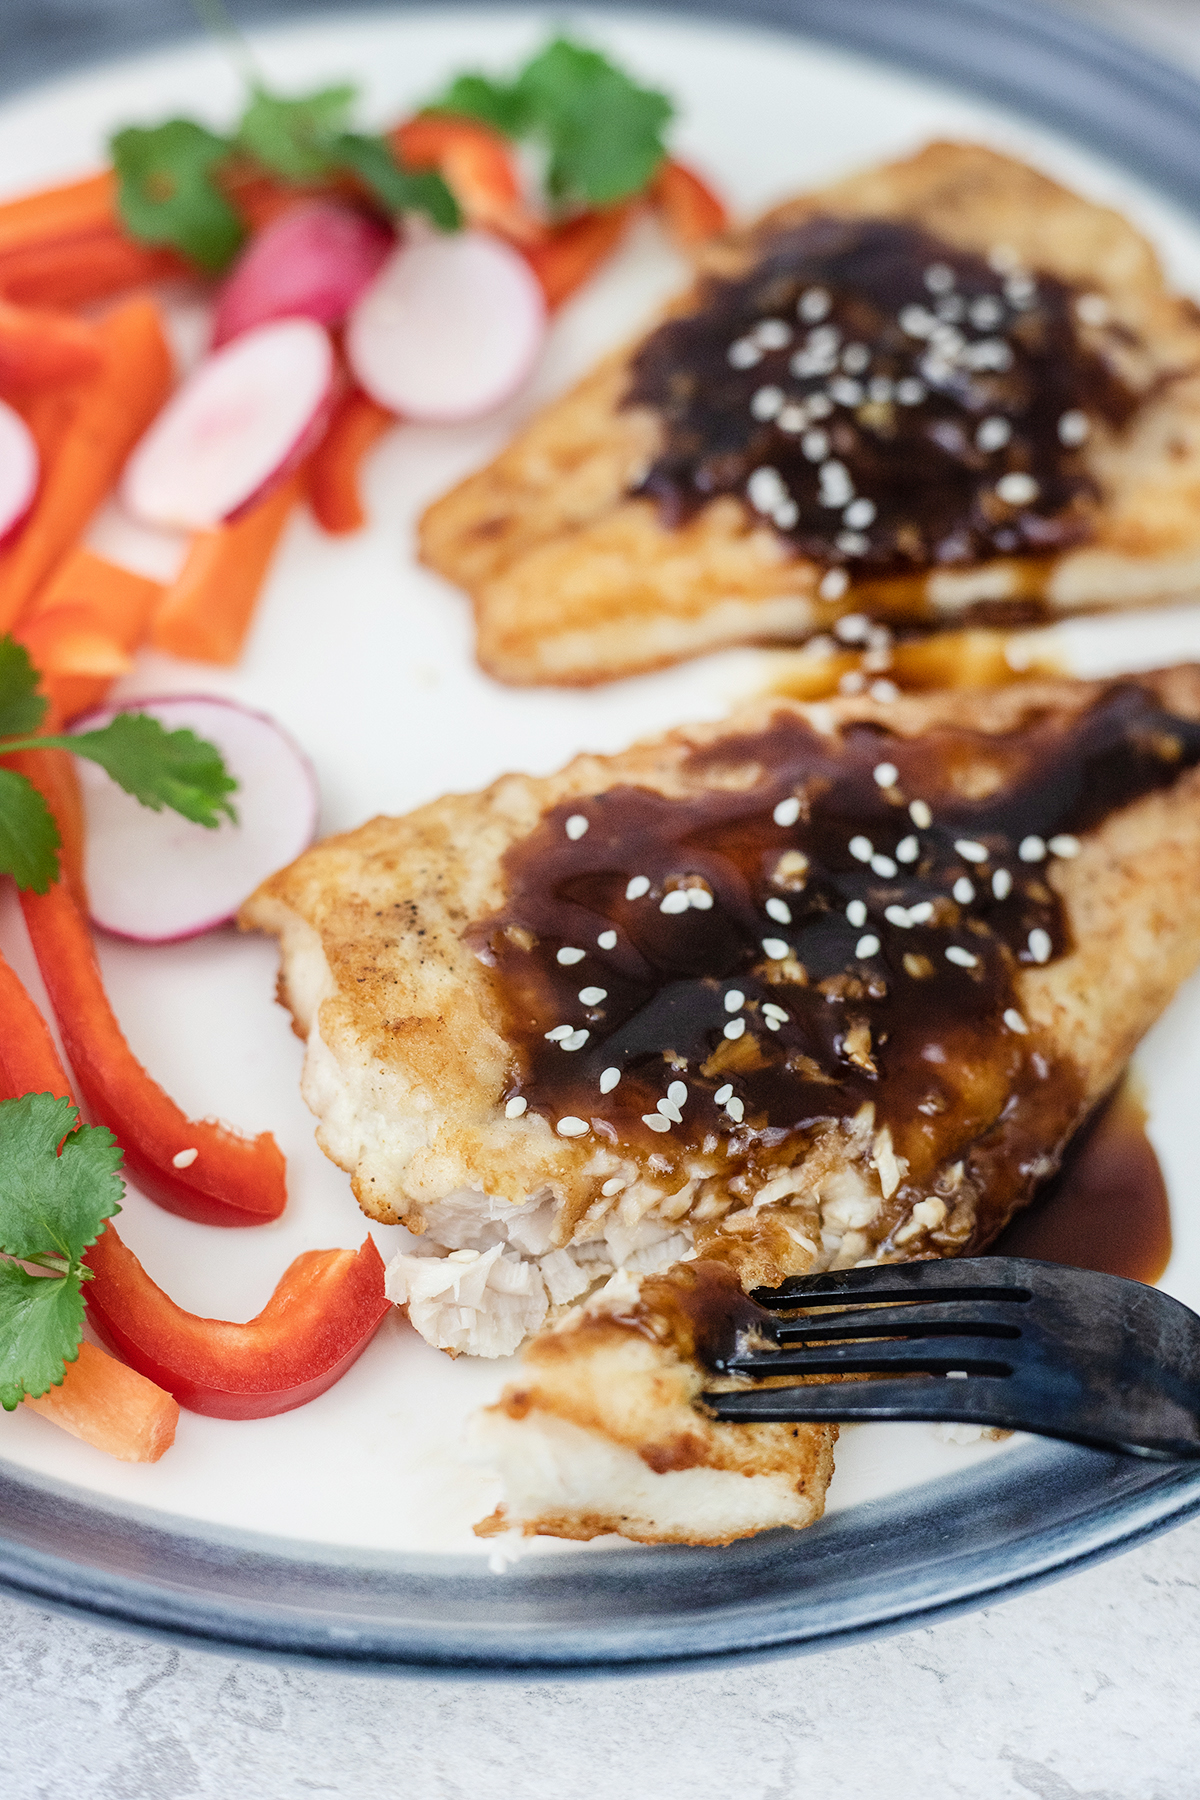 Pan-Fried Sea Bass with Soy Sauce